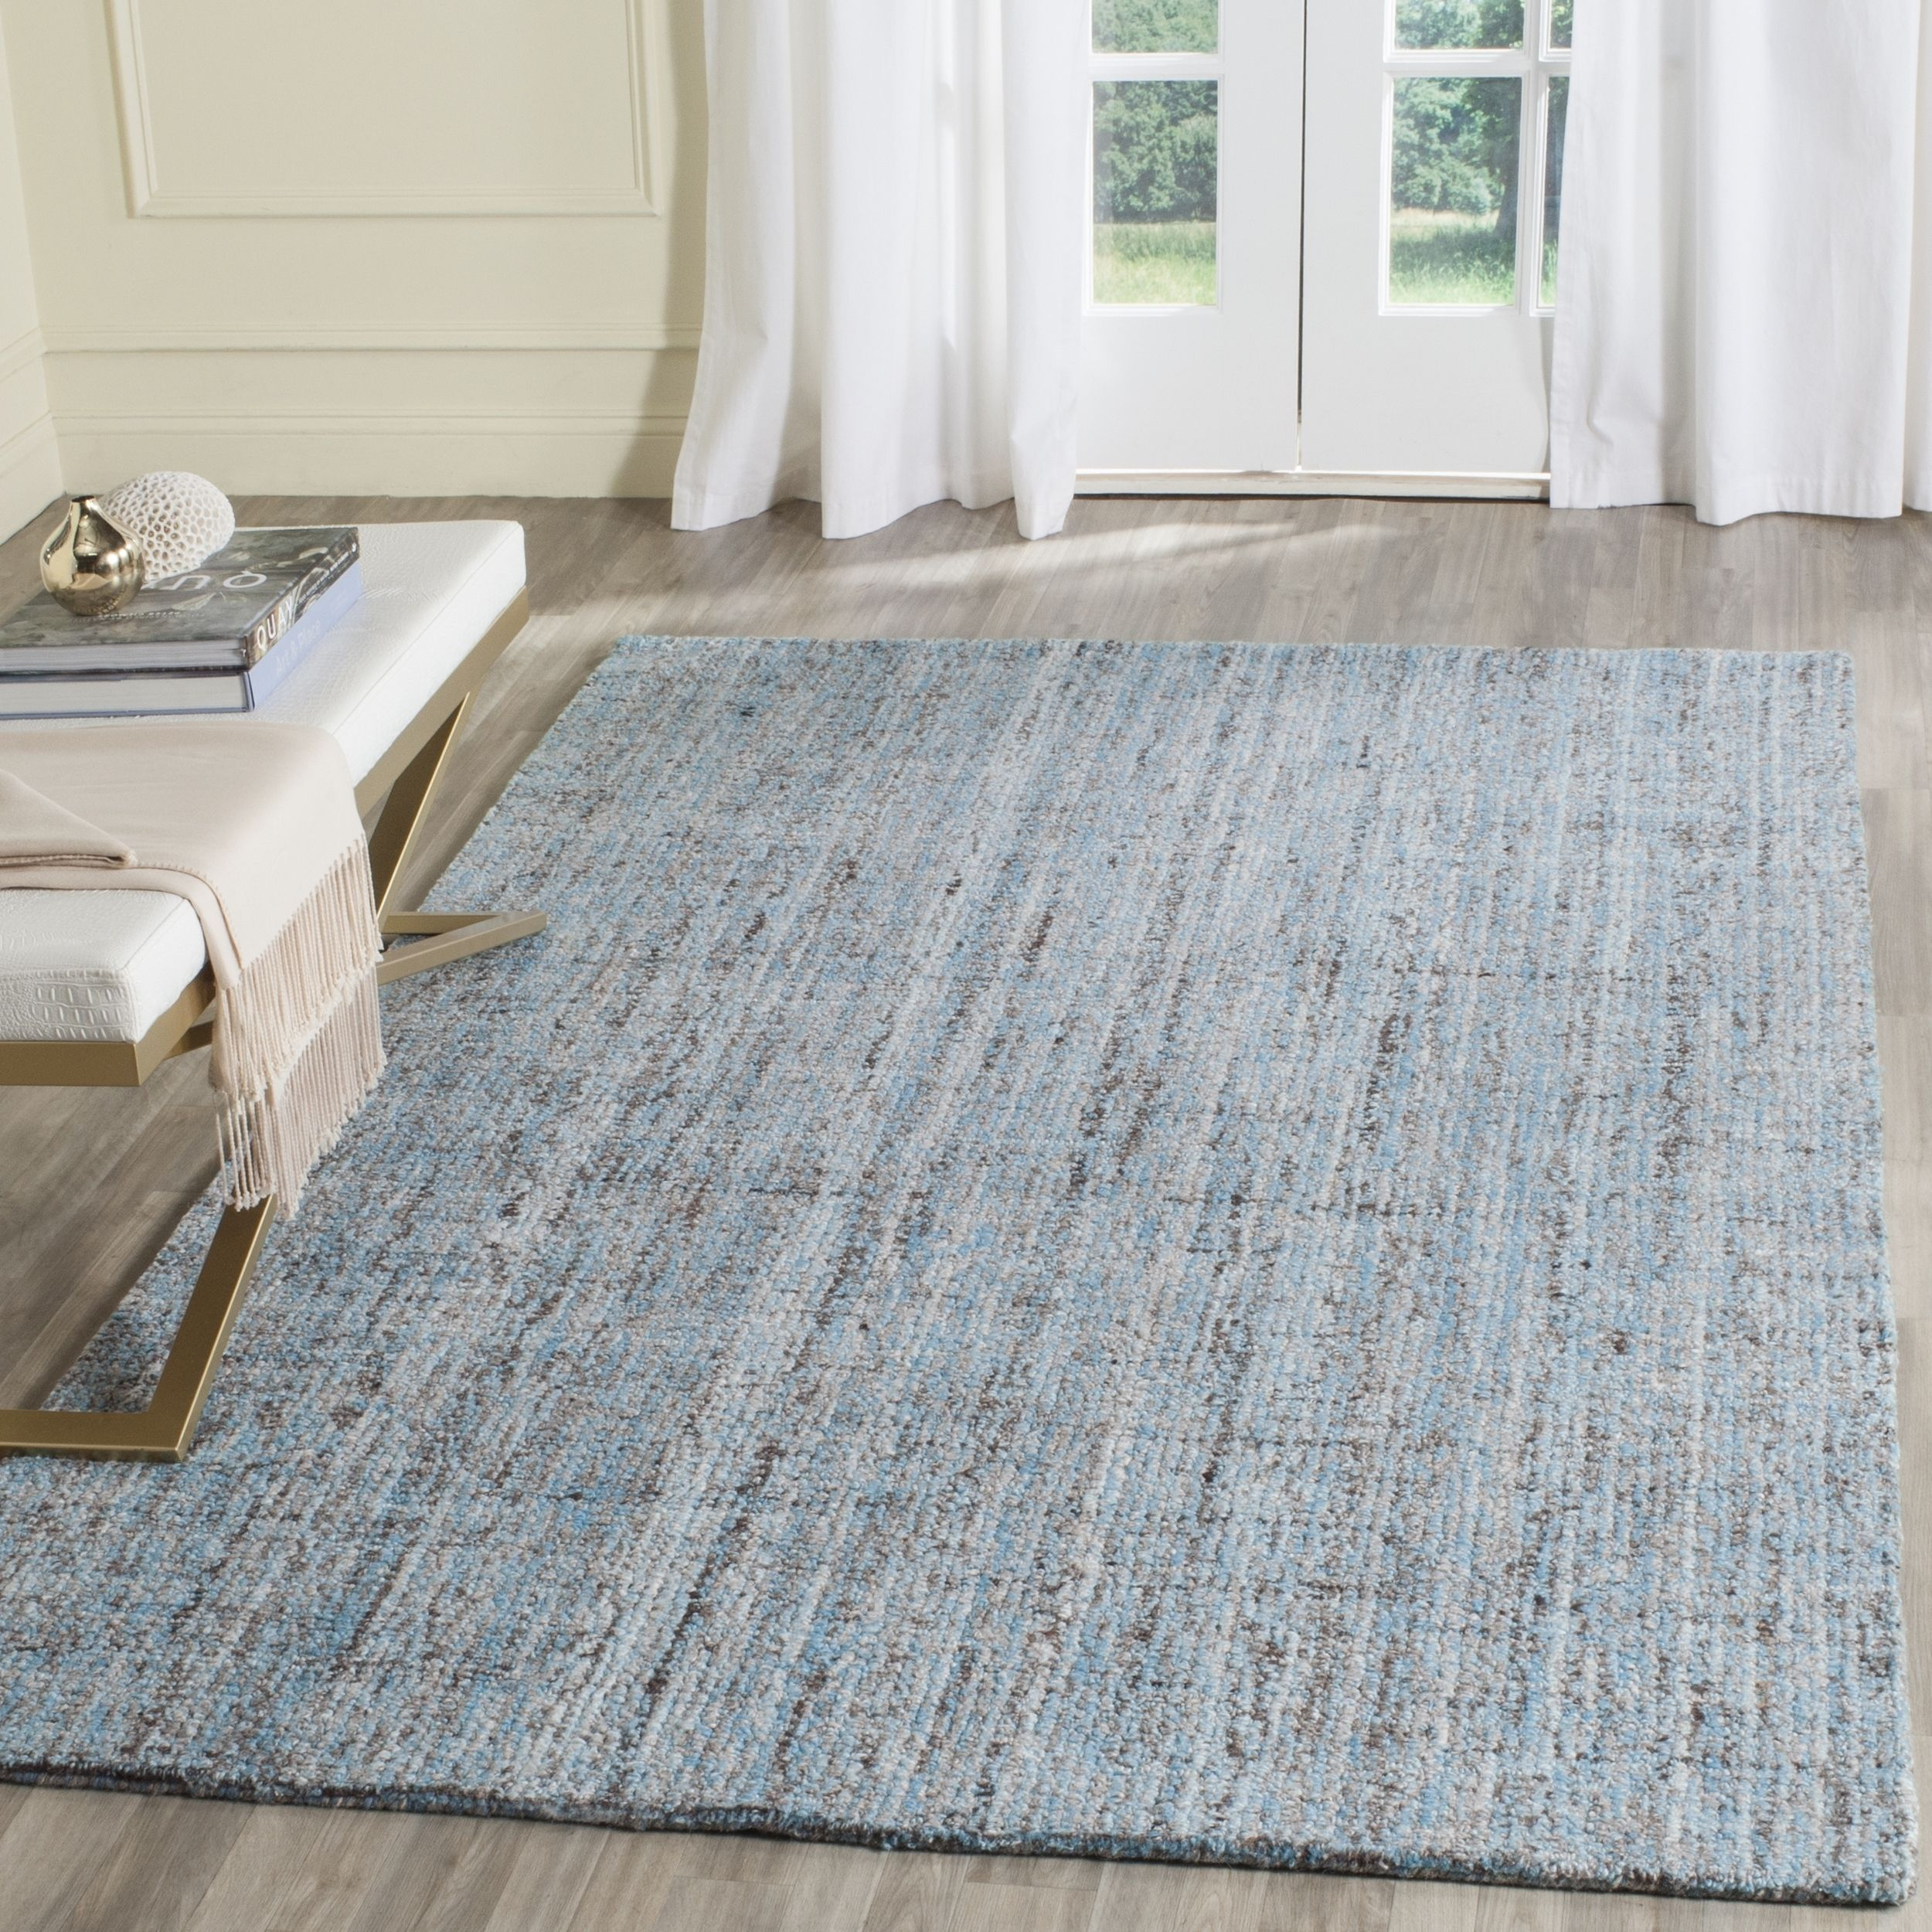 Safavieh Handmade Modern Abstract Blue Multi Rug 6 X 9 6 X 9